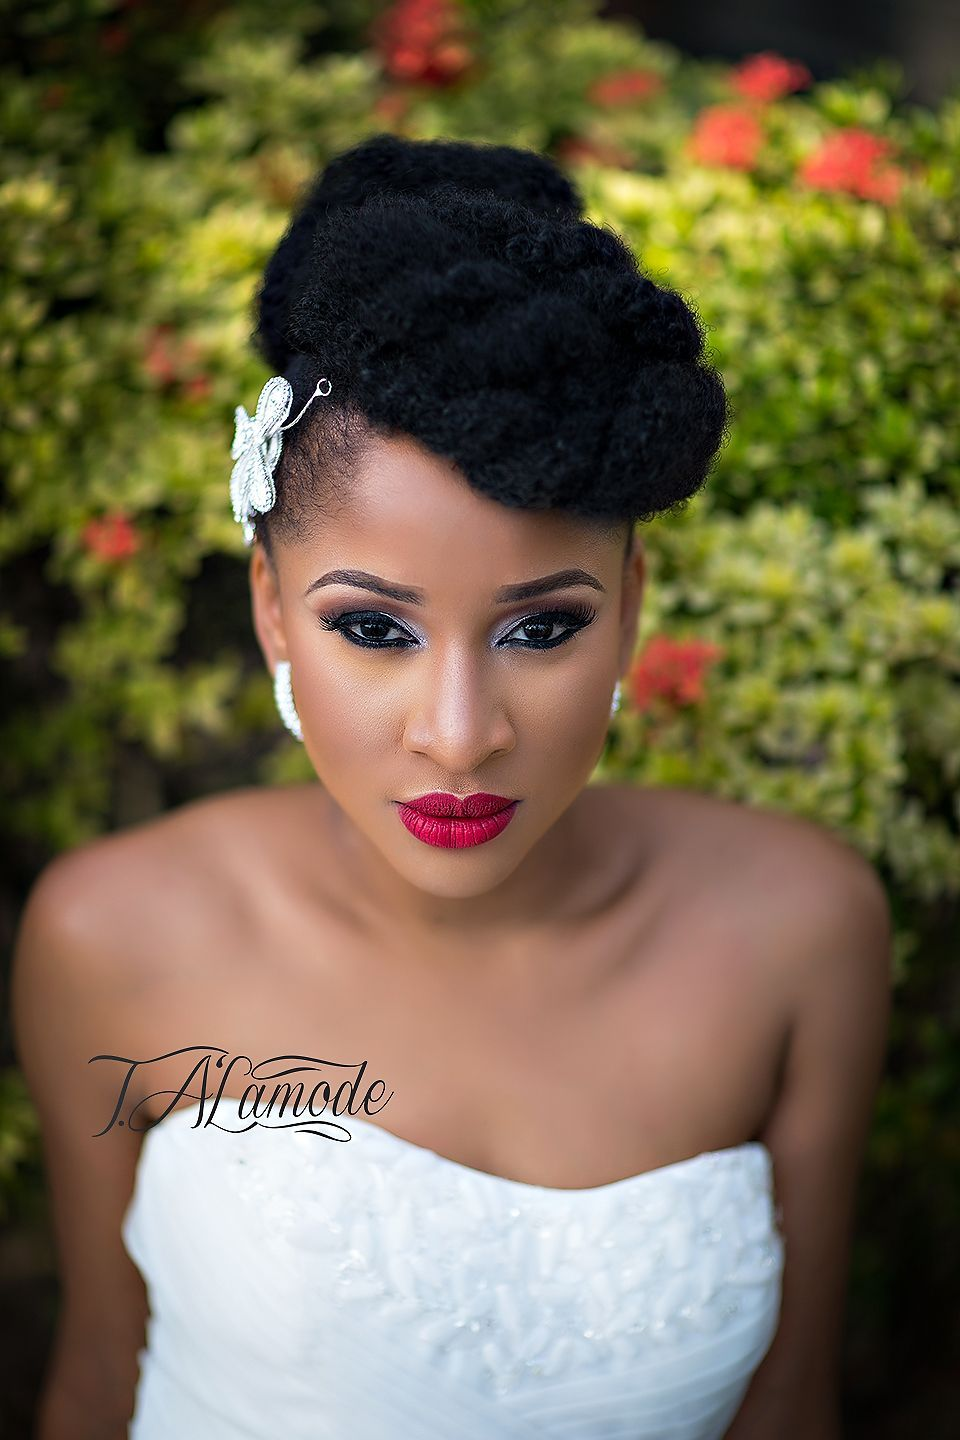 nigerian bridal #natural hair and makeup shoot - black bride